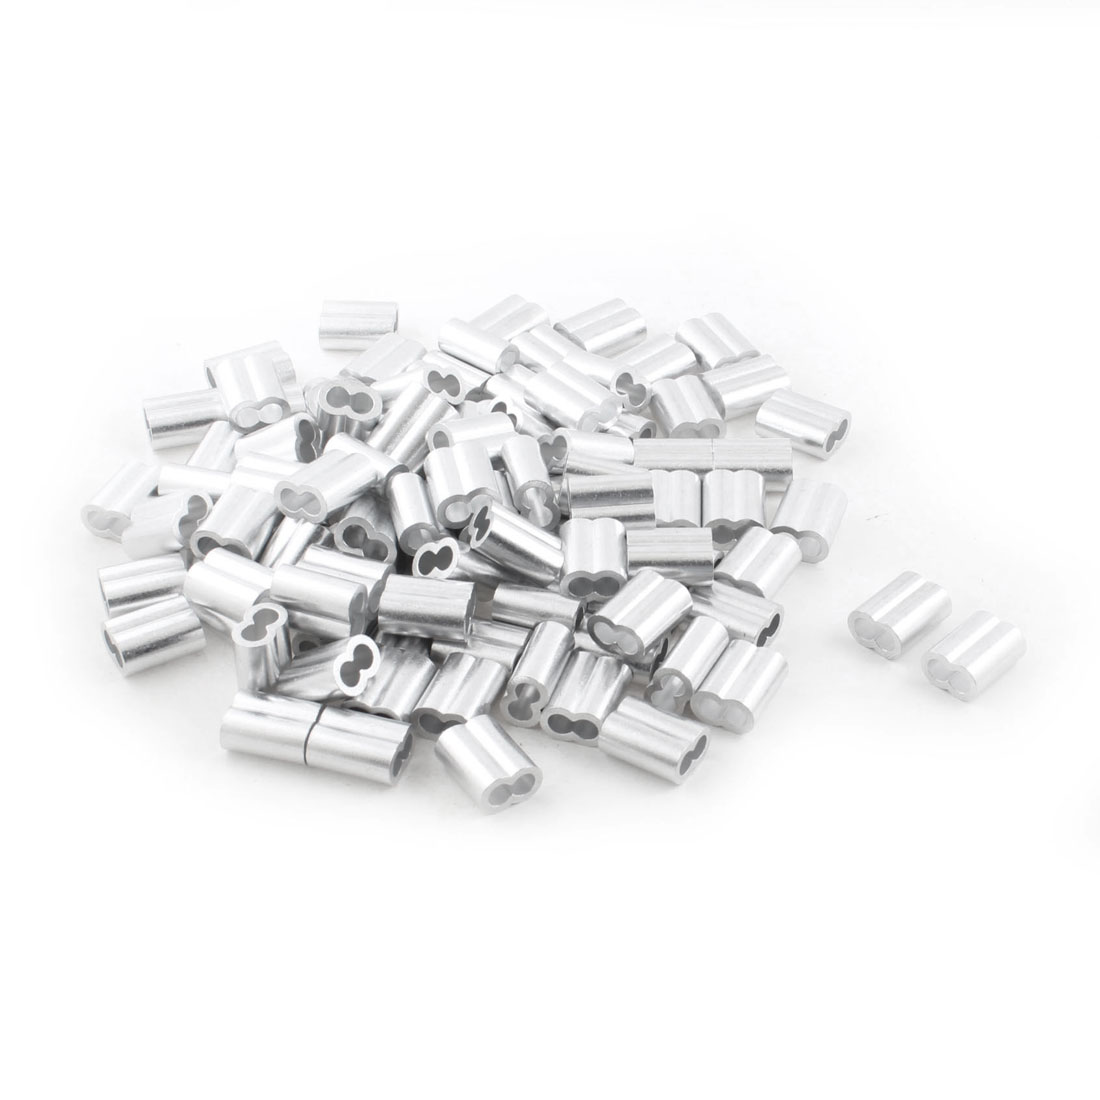 100Pcs Silver Tone Aluminum Ferrules Sleeves for 8mm Steel Wire Rope